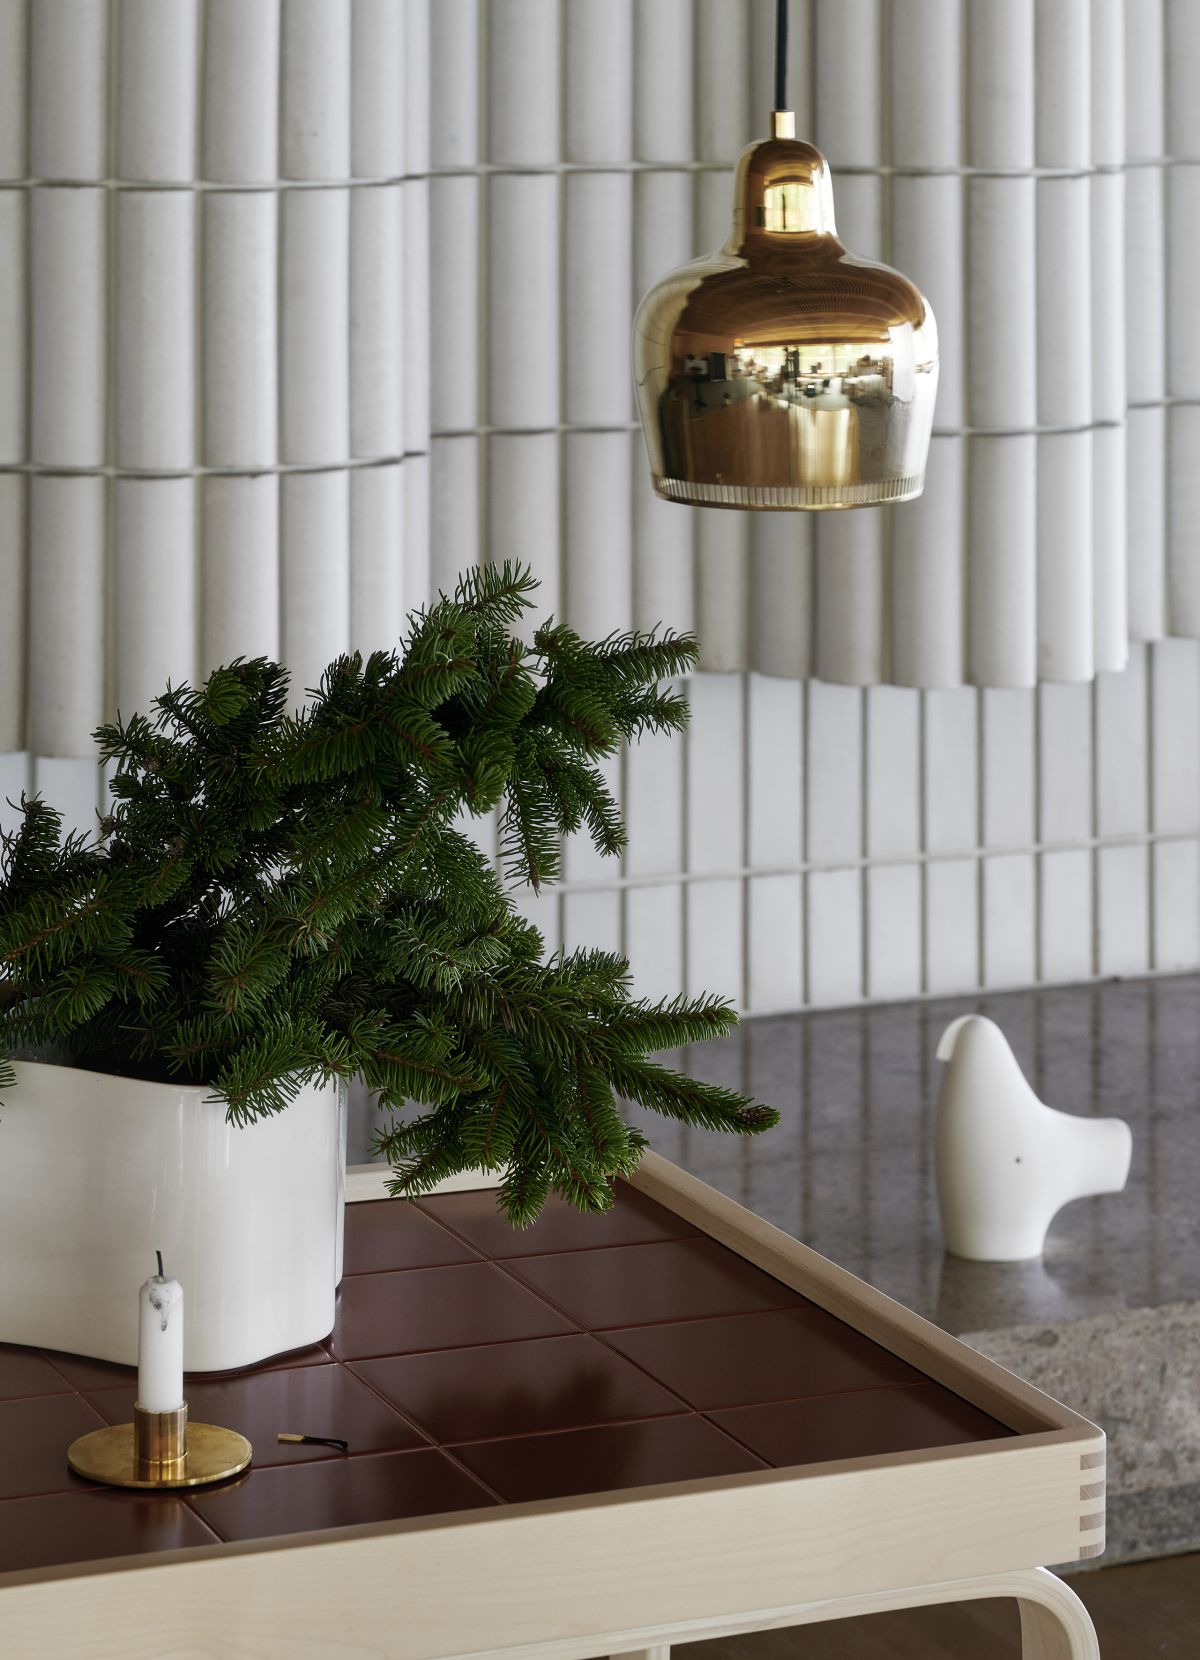 Riihitie-Plant-Pot-B-White-Teatrolley-900-Pendant-Light-A330S-Golden-Bell-Savoy-1980200